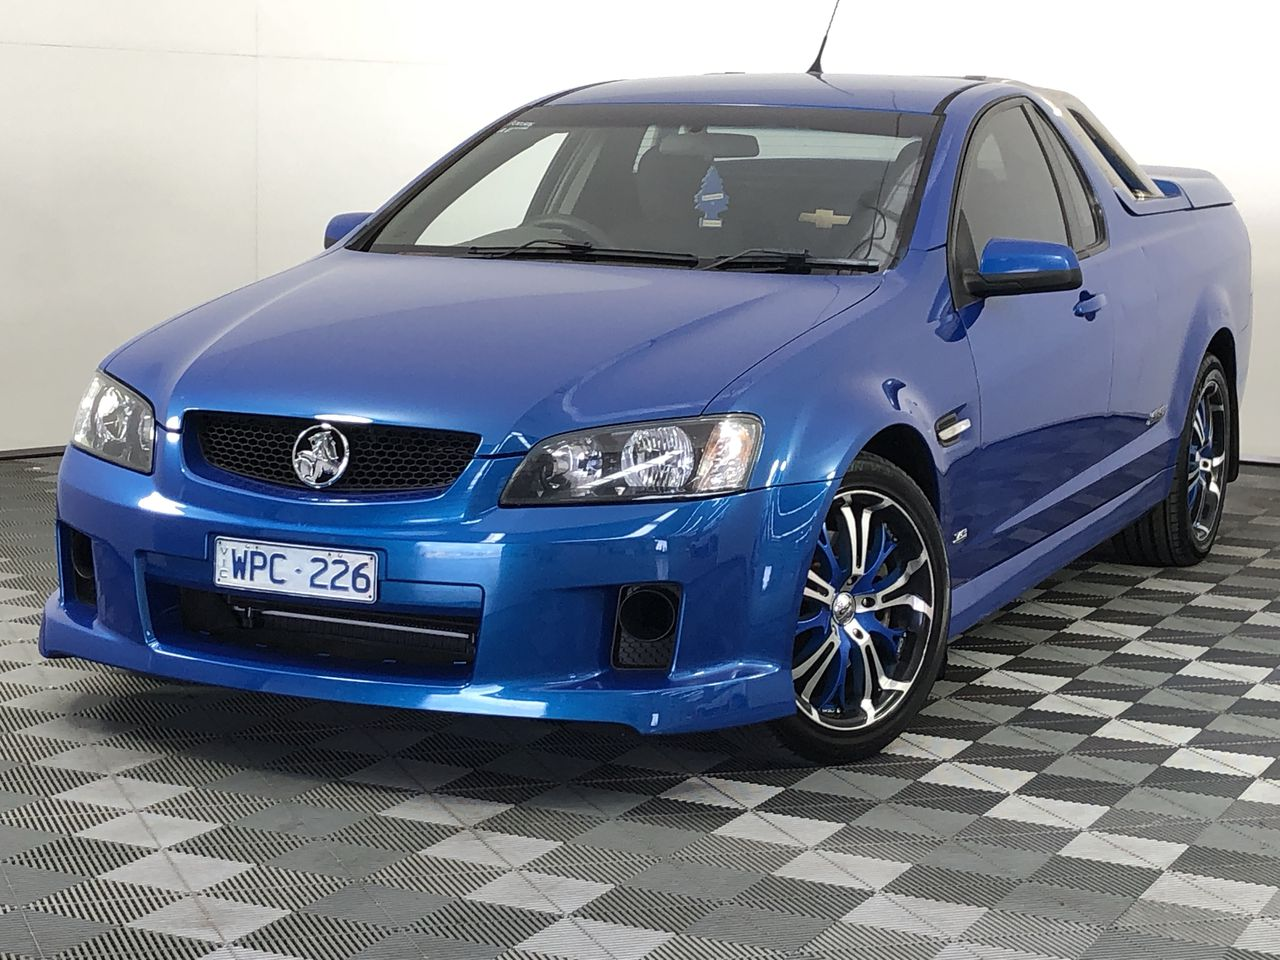 2008 Holden Commodore SS VE Automatic Ute